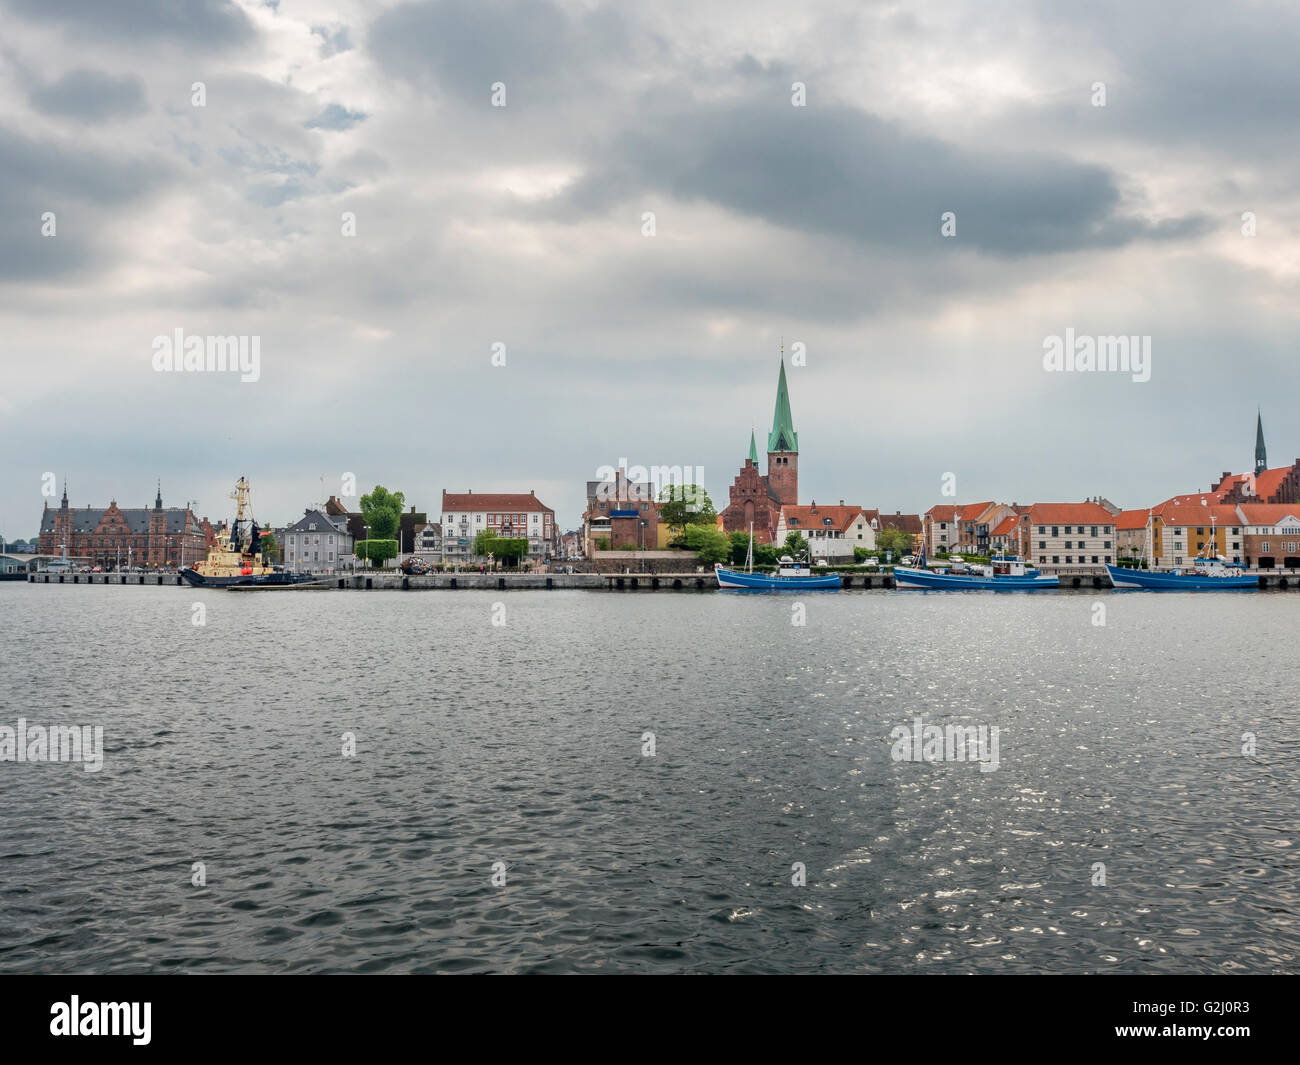 View of the port area of Helsingoer and historic city, Denmark, Europe - Stock Image